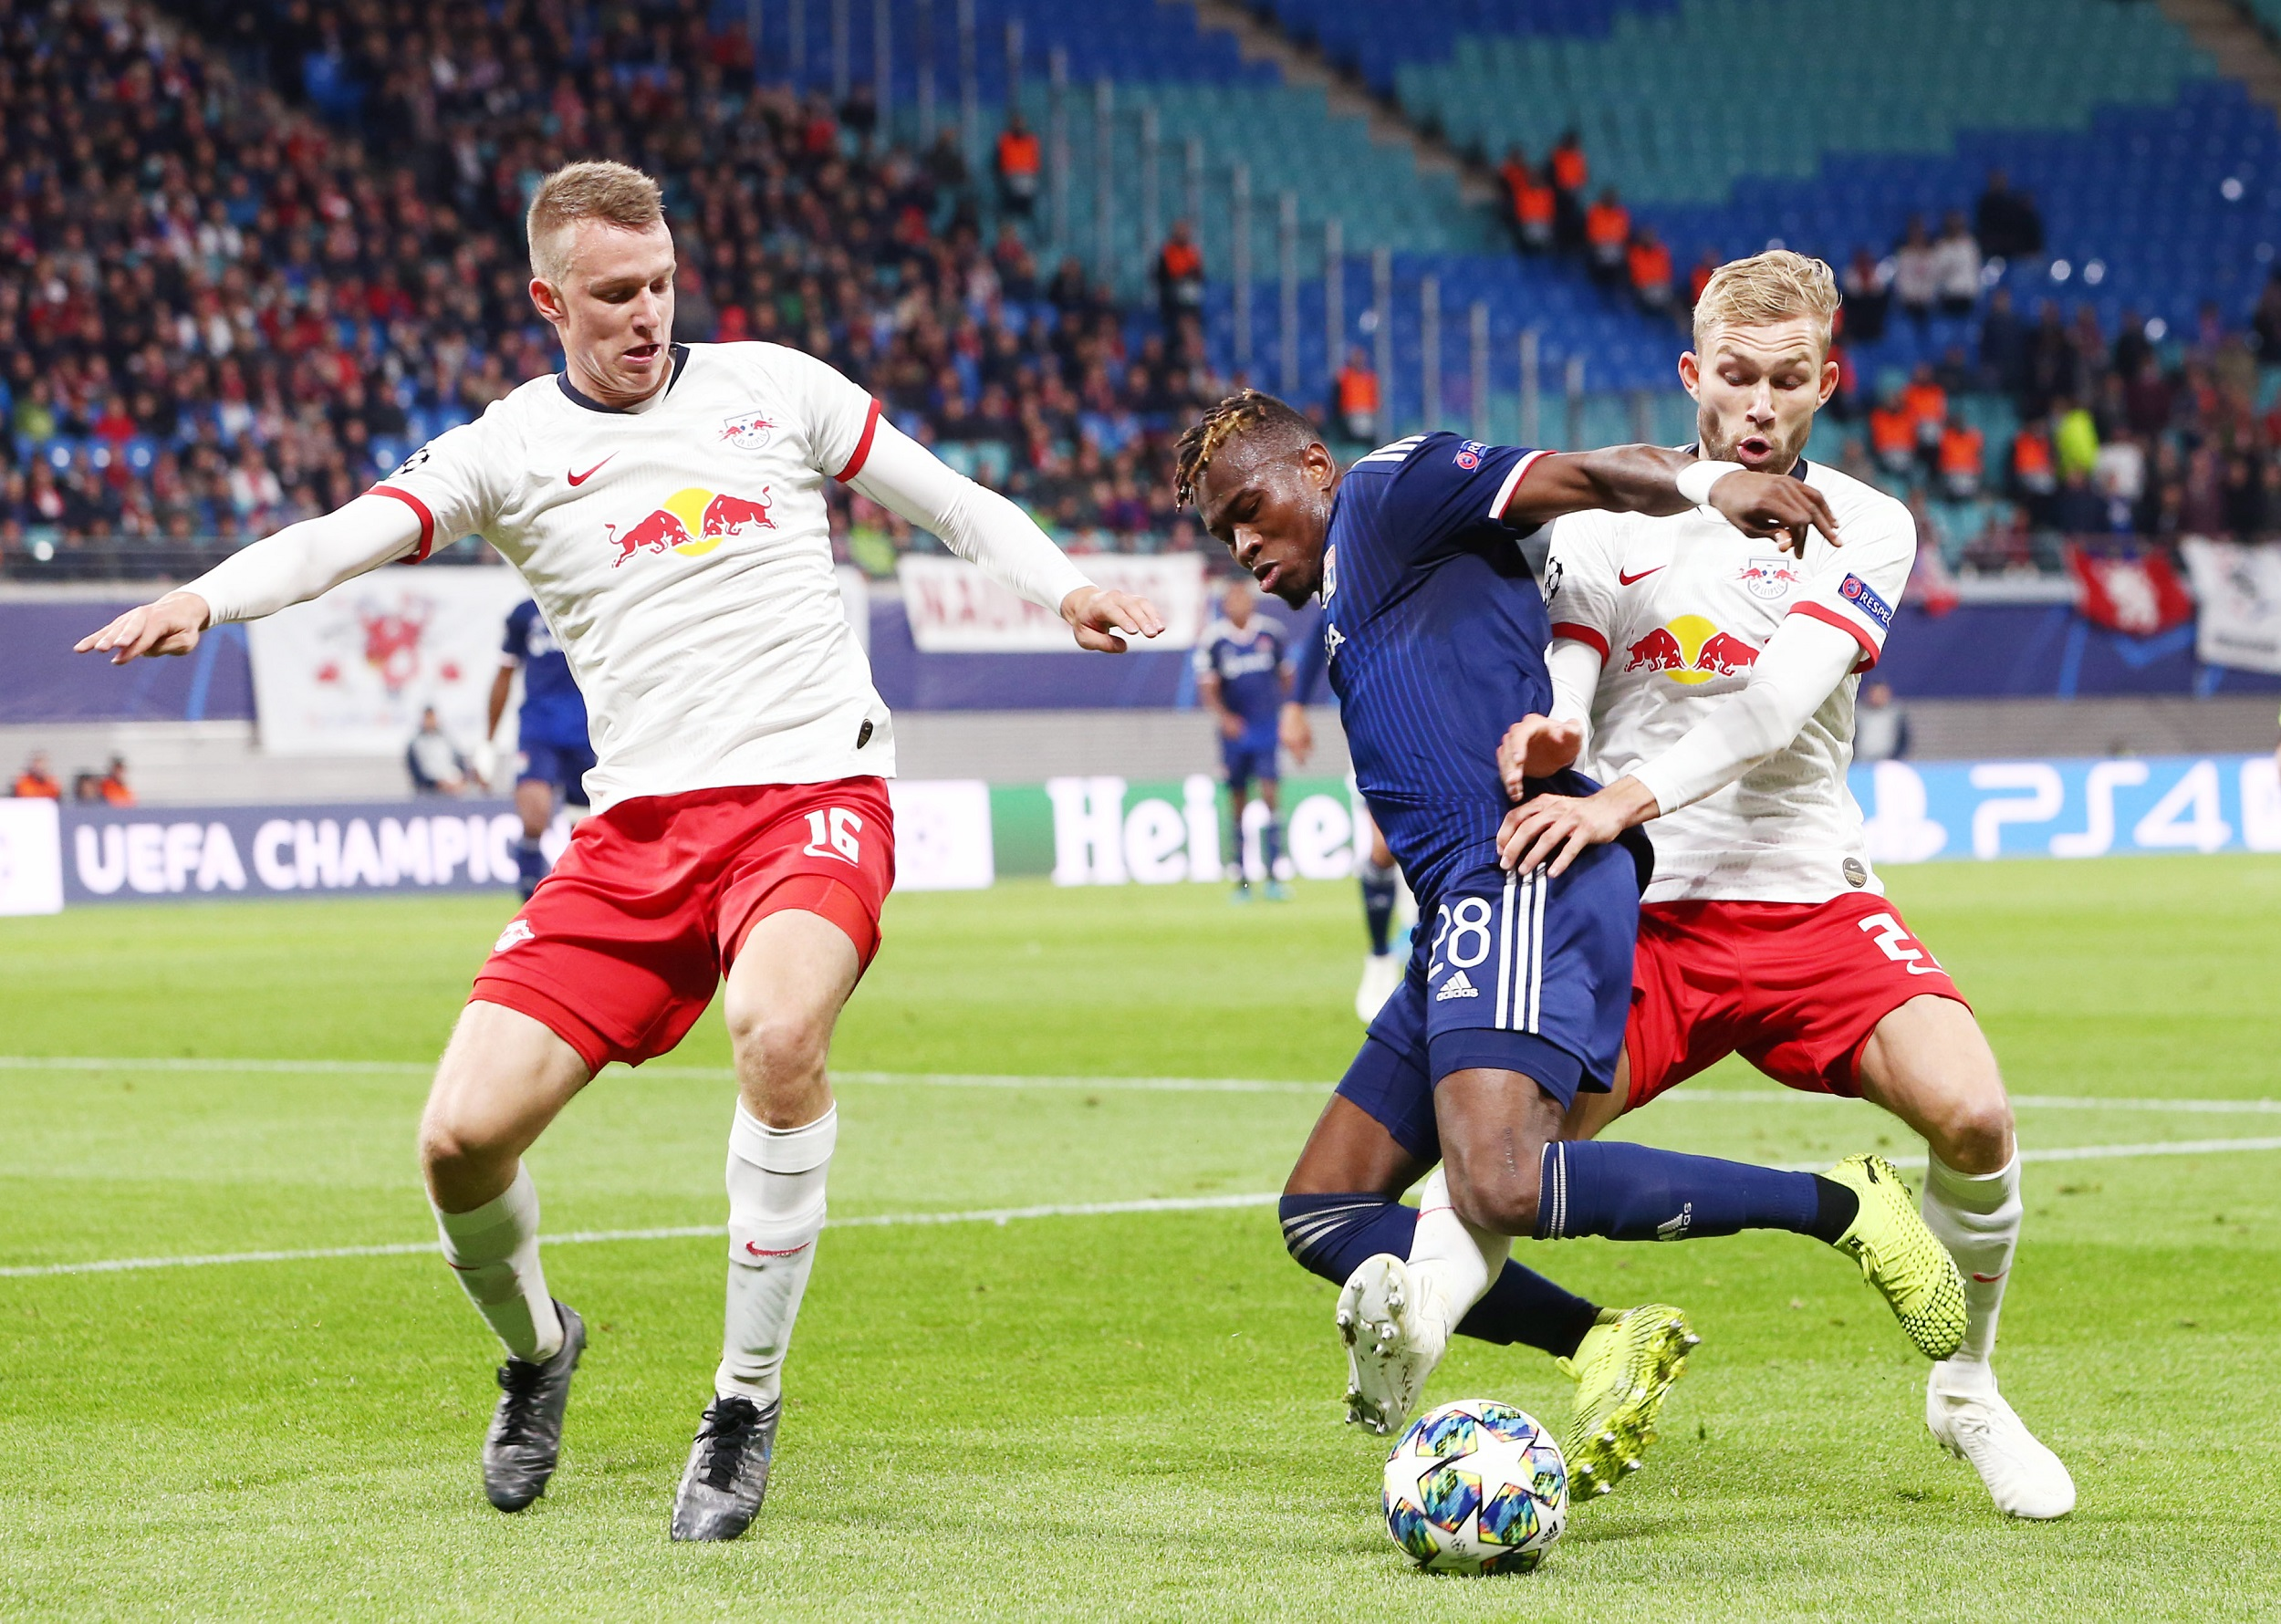 Konrad Laimer and Lukas Klostermann ruled out until 2021